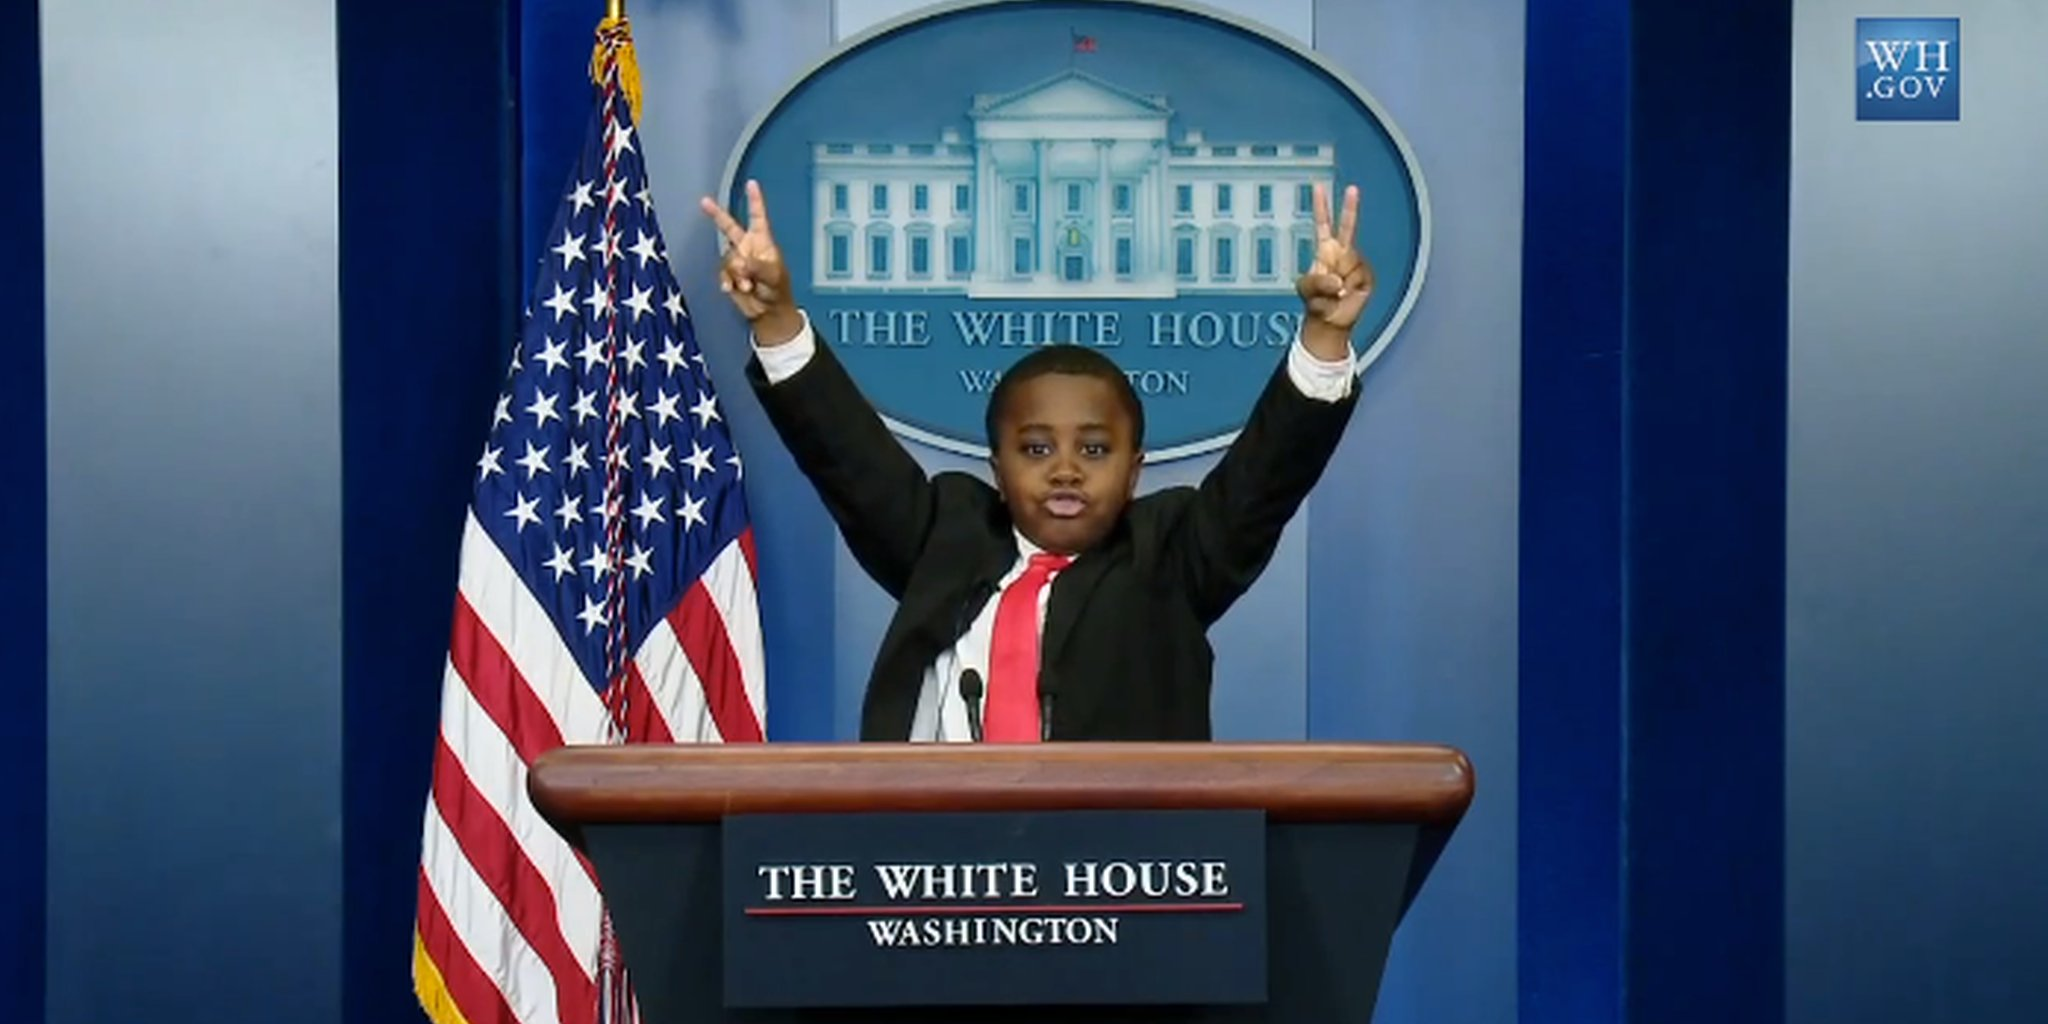 Kid President: A Leader of Today - Madison Mariles